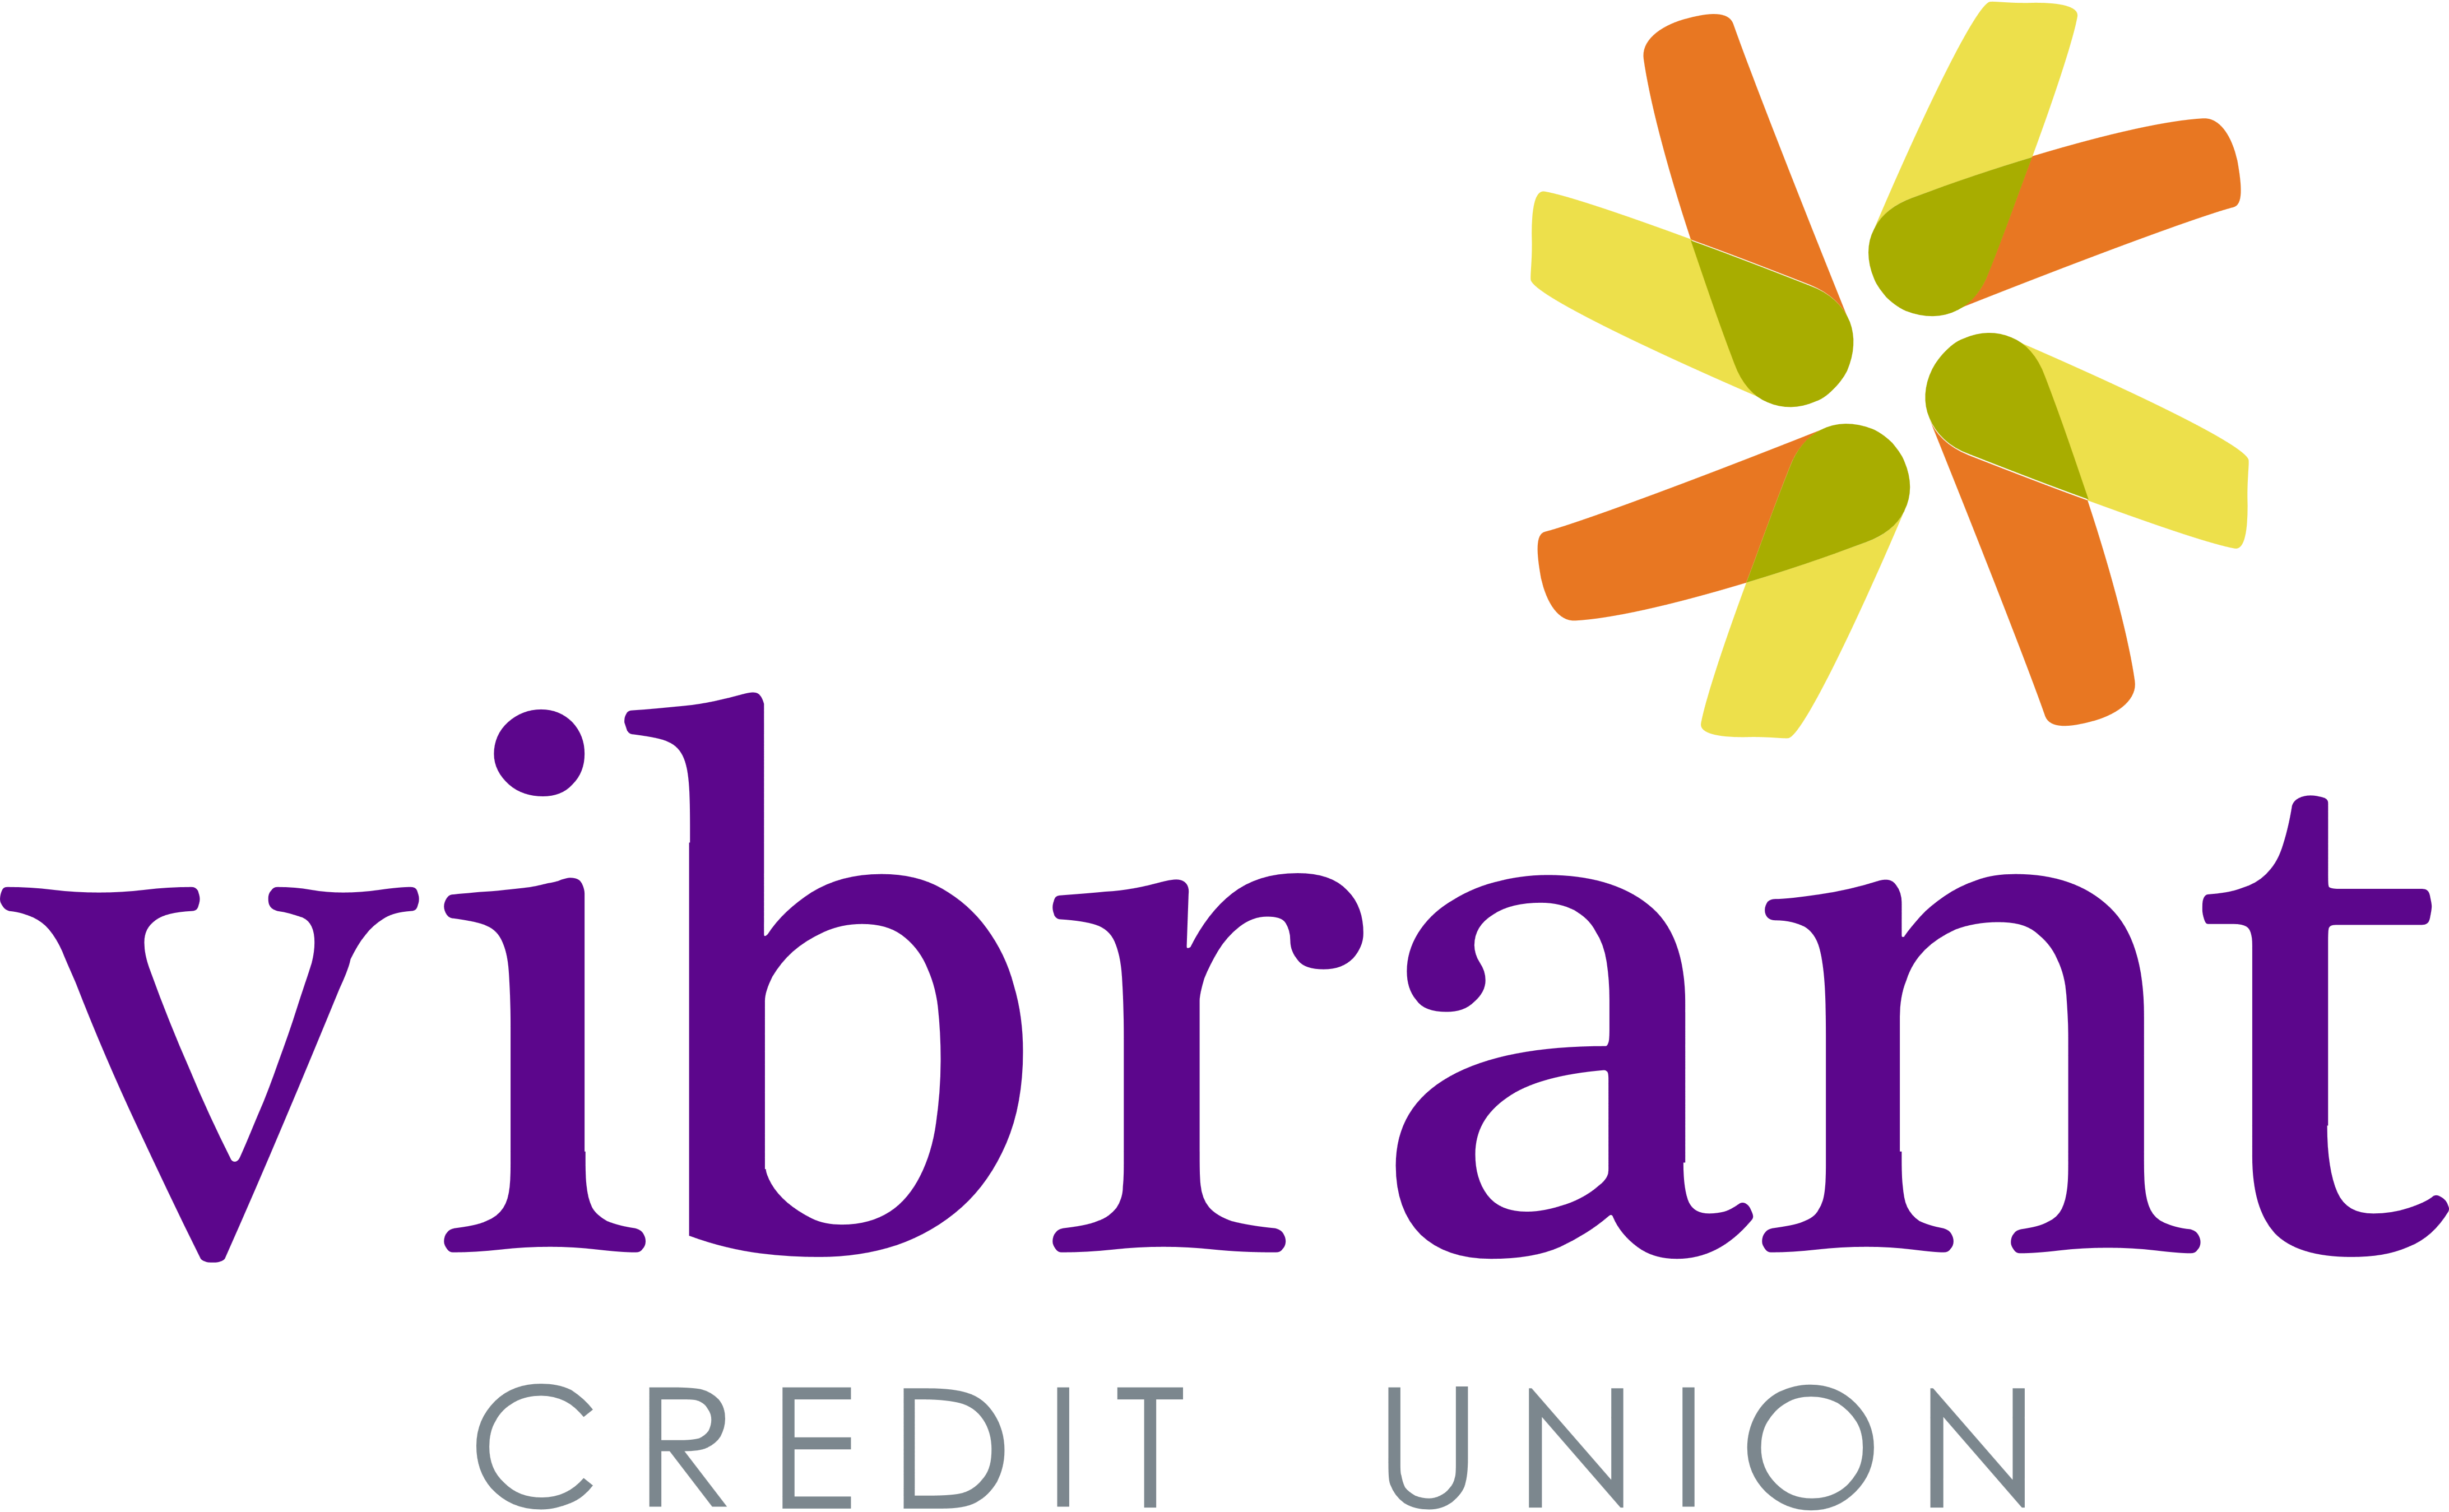 vibrant credit union logo Png Transparent Download in 2020